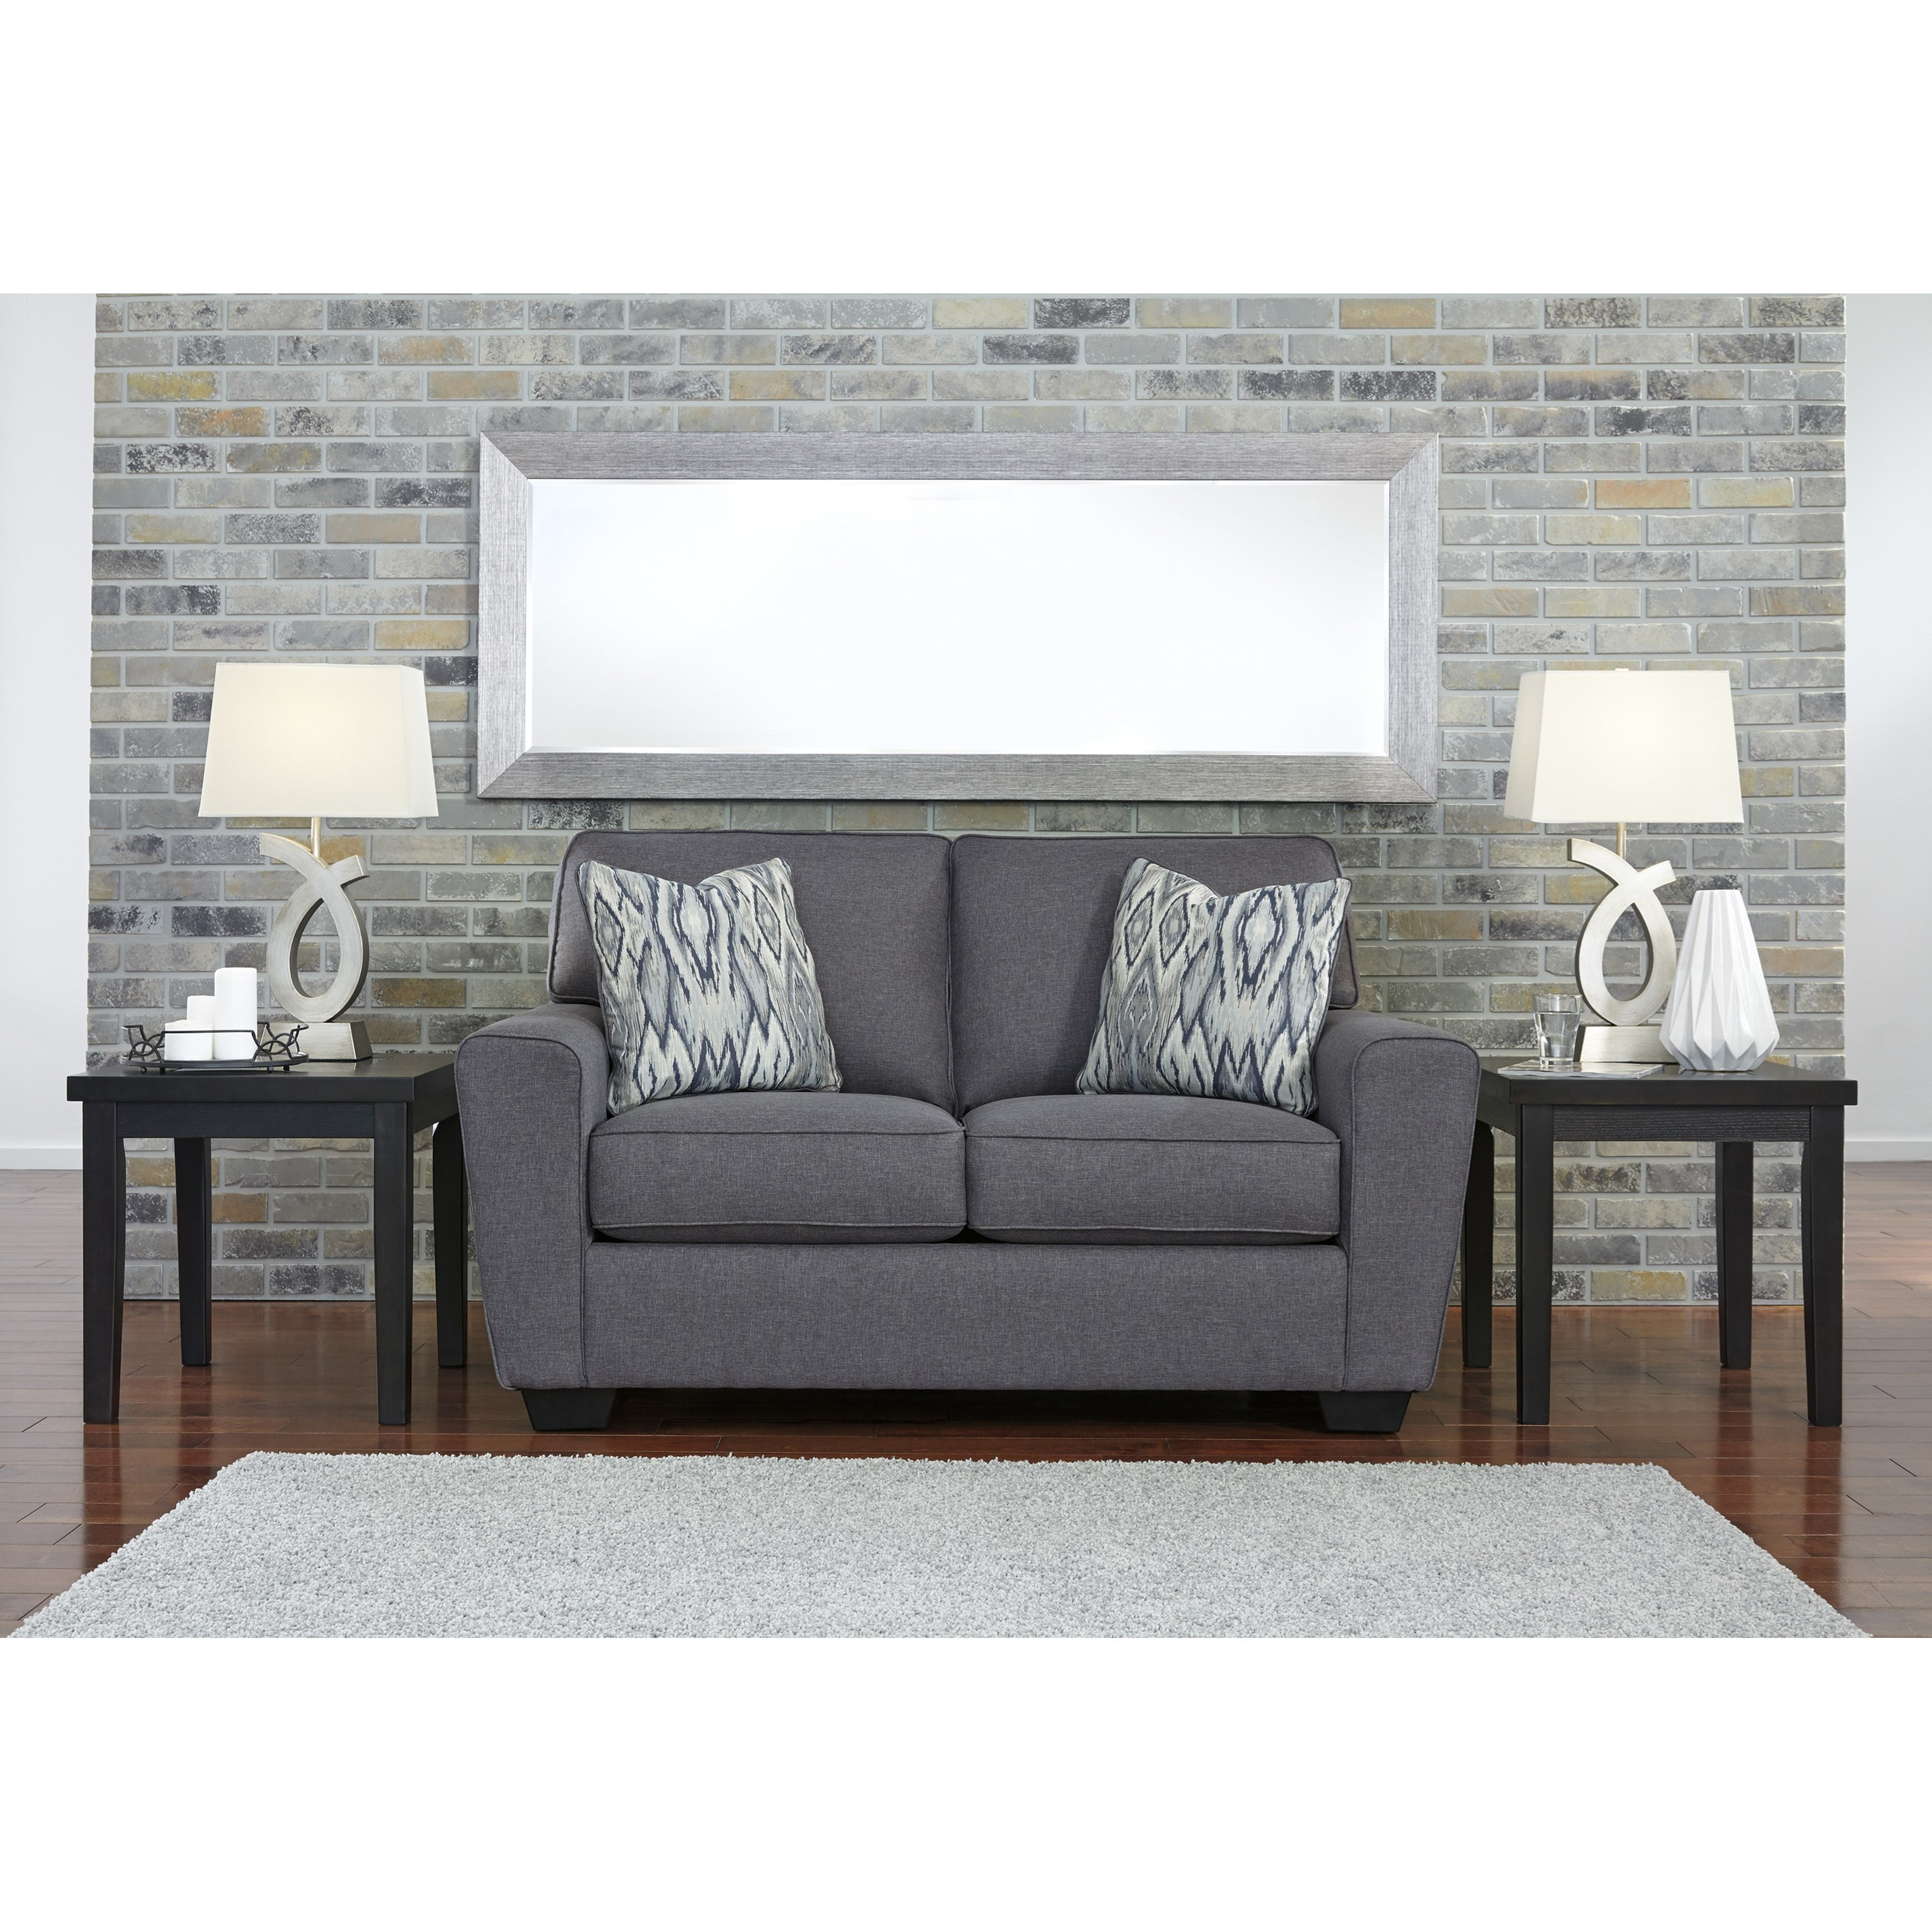 Ashley furniture calion 2070235 contemporary loveseat for Ashley furniture appleton